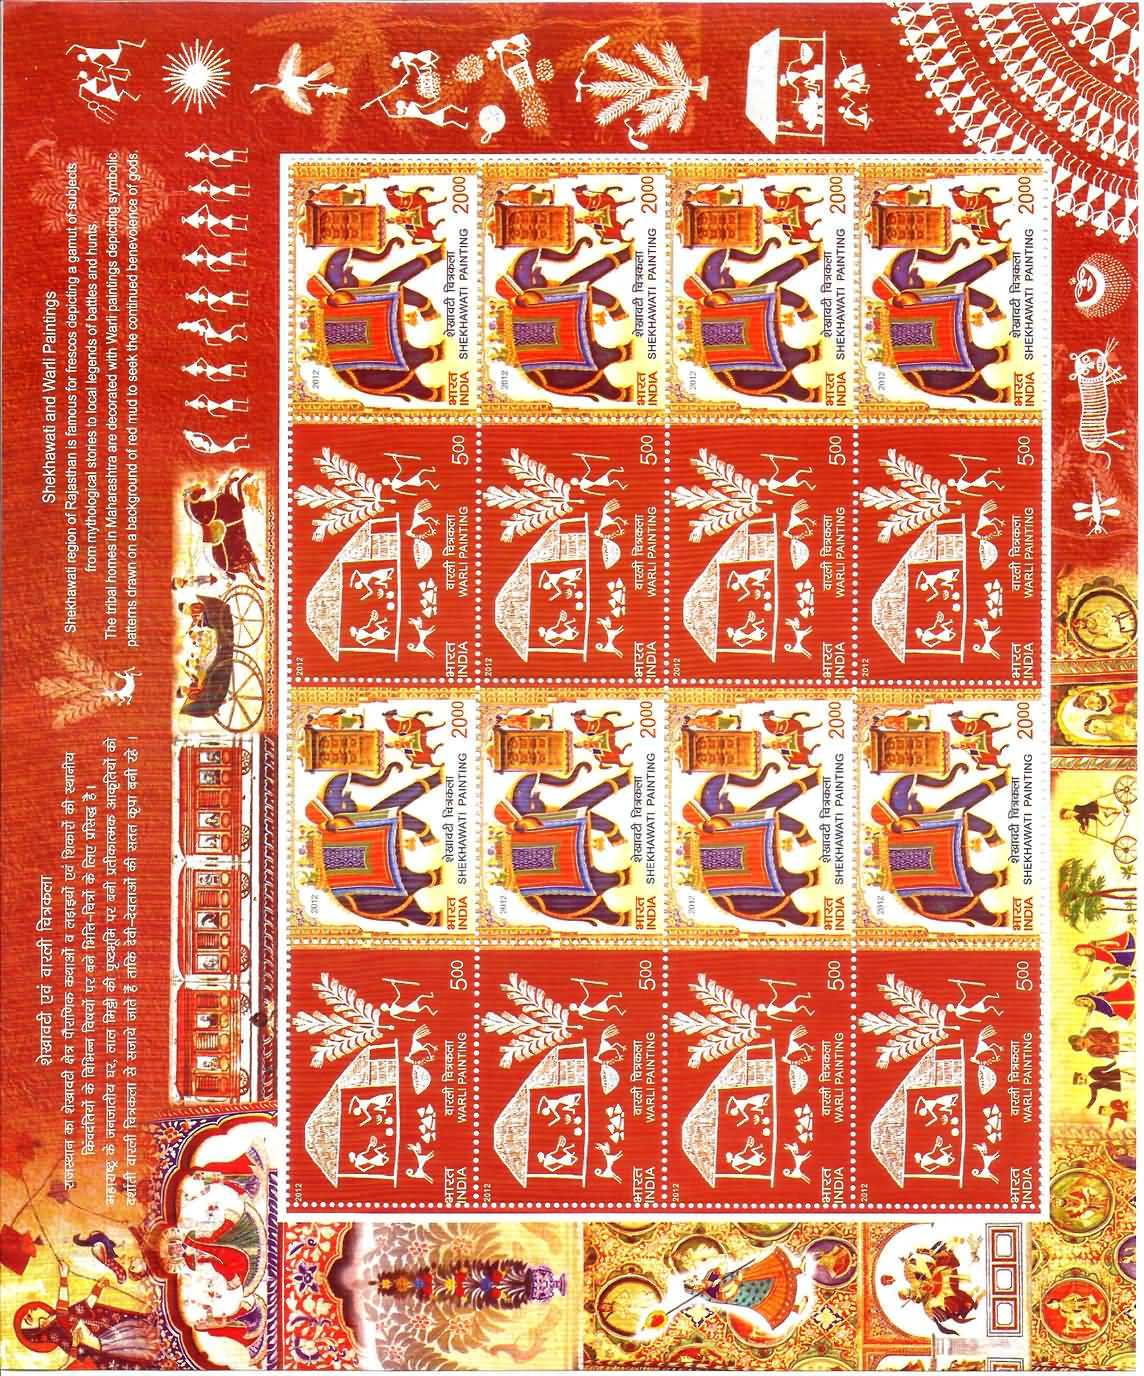 http://www.stampsofindia.com/lists/stamps/sheetlets/sheetlet084.jpg